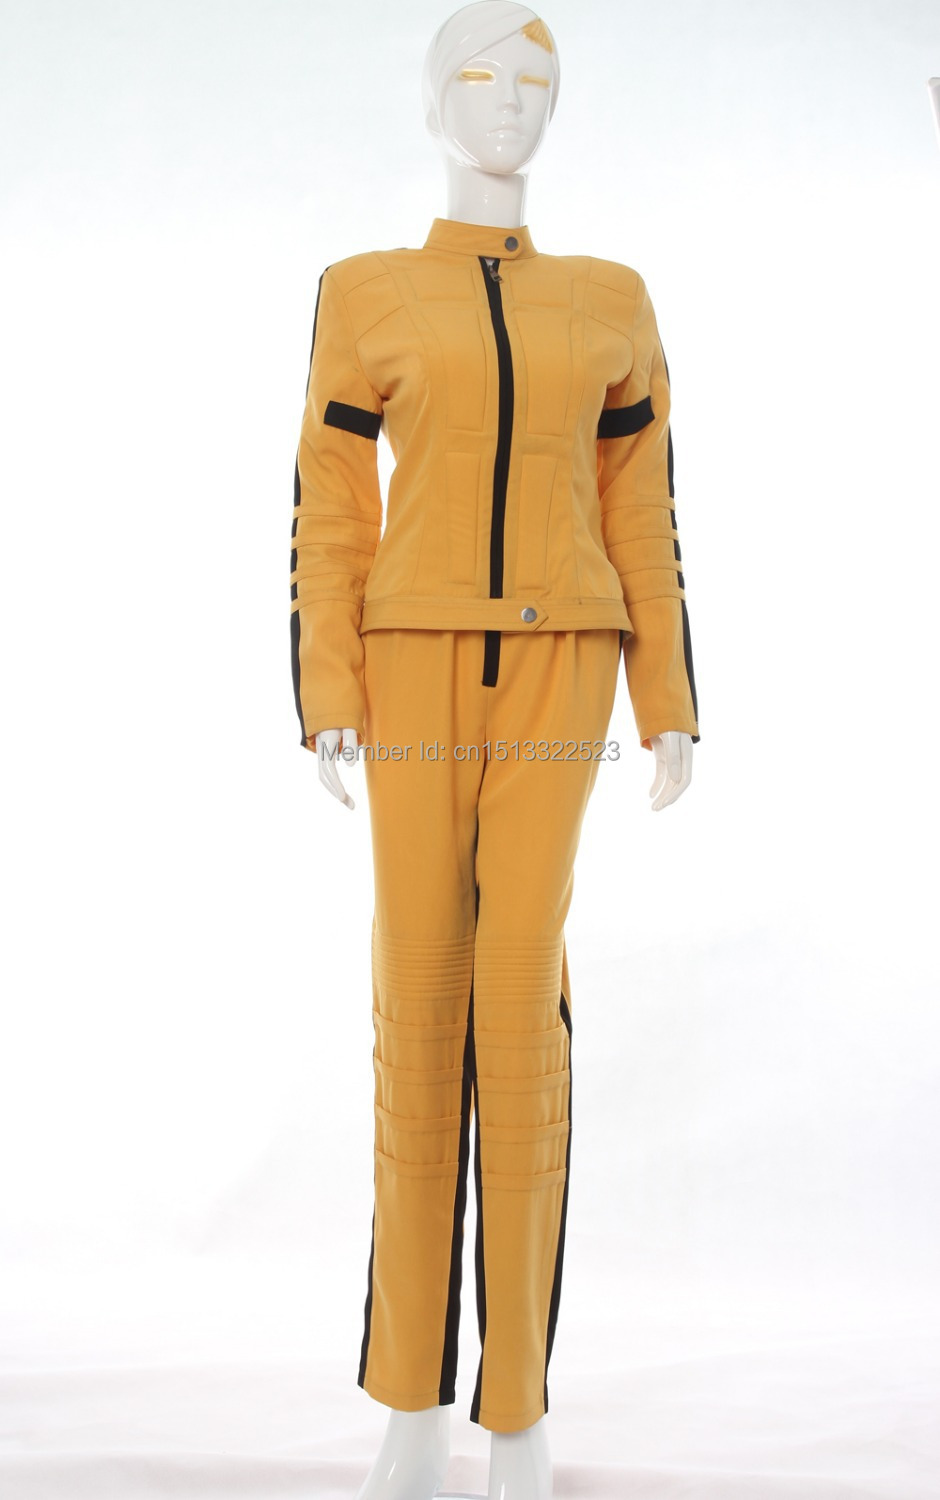 Dress Kill Bill Kill Bill Cosplay Costume